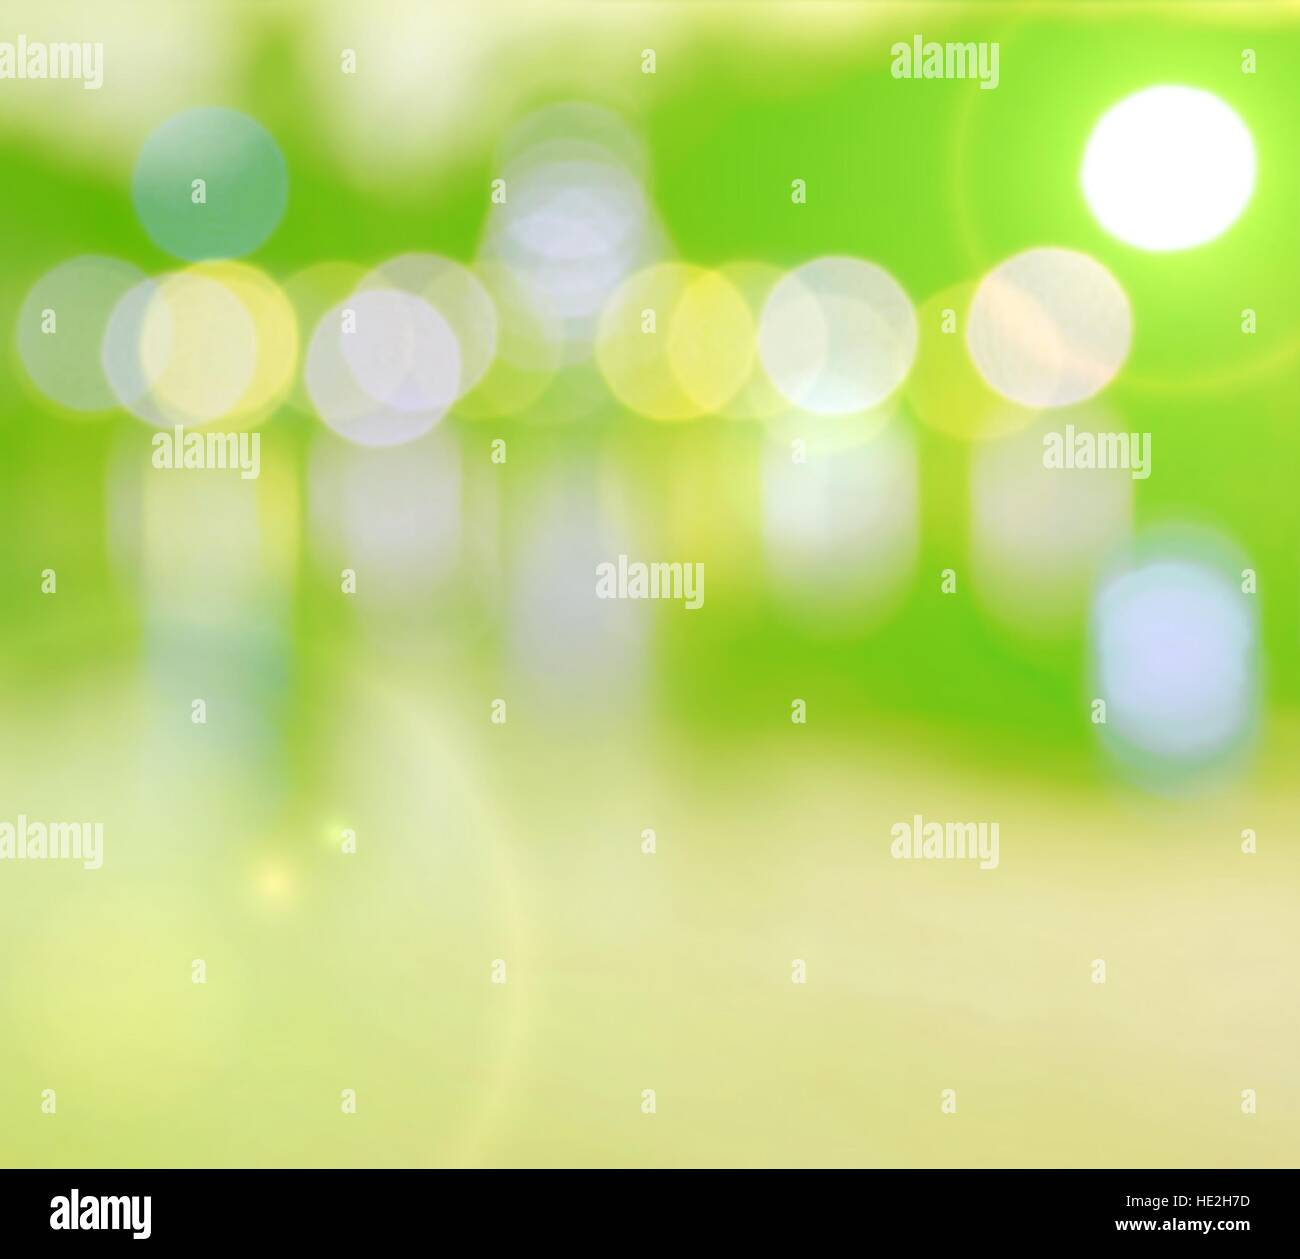 Abstract multicolor blurred bokeh light with water reflection and  lens flare effect on green yellow  background - Stock Image